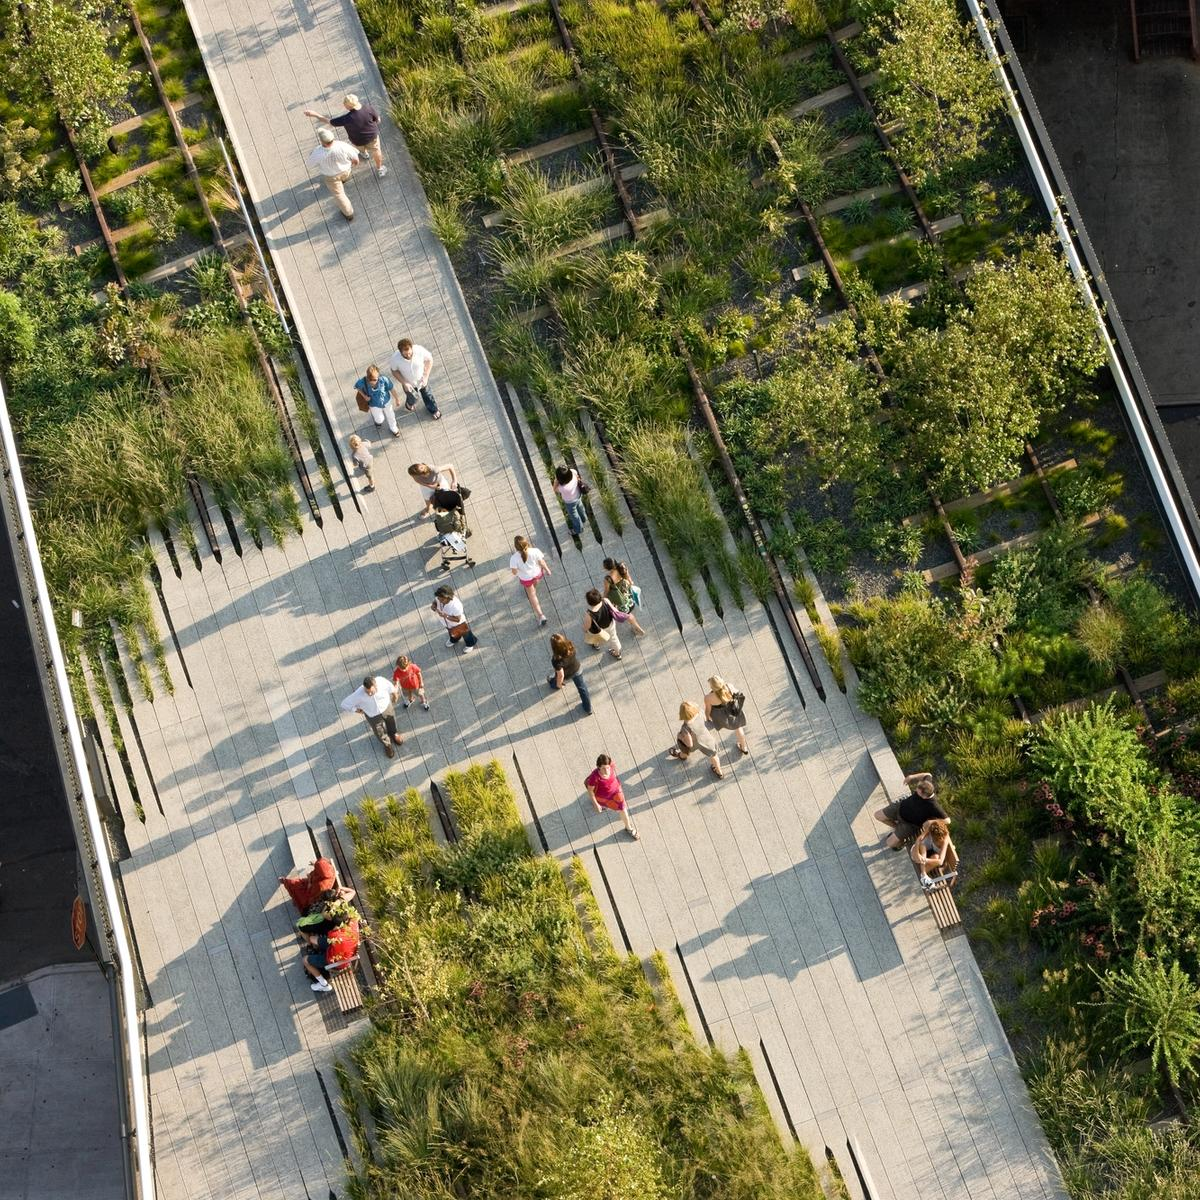 Landscape Architects: The High Line